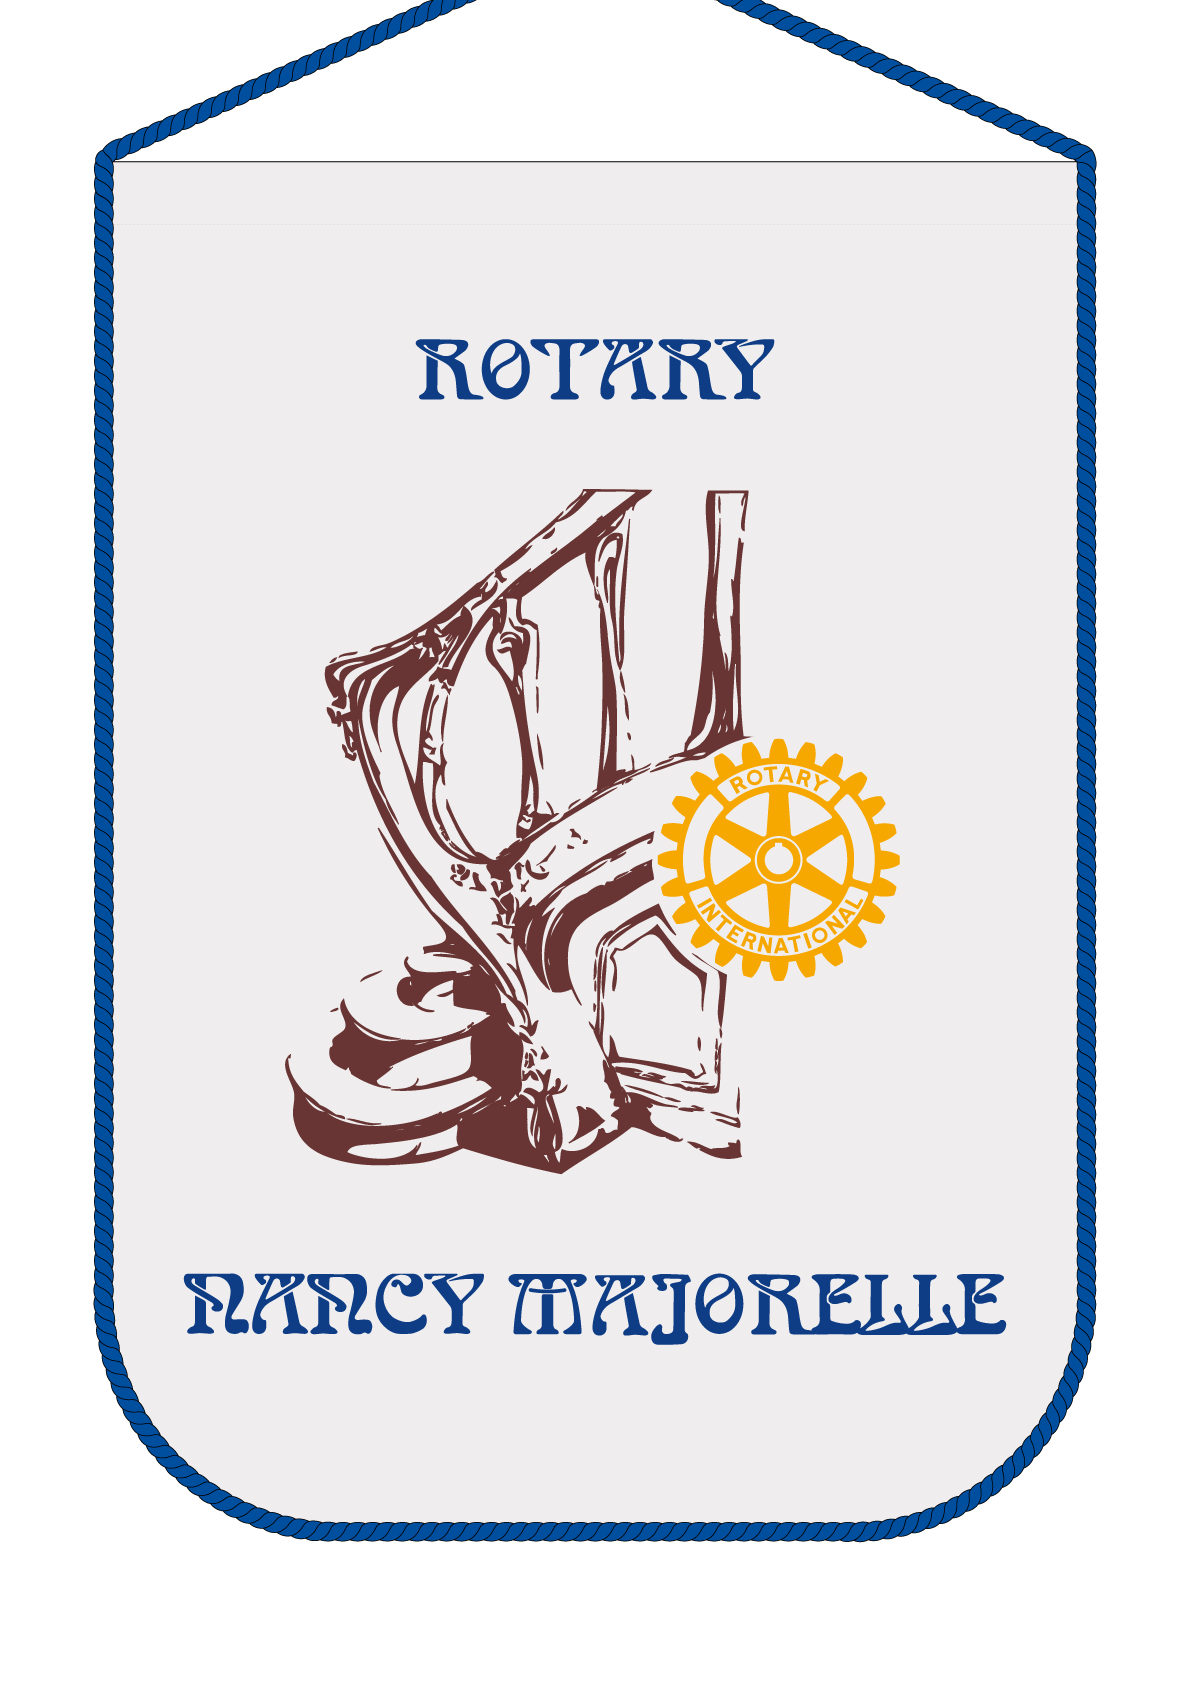 FANION ROTARY CLUB NANCY MAJORELLE R